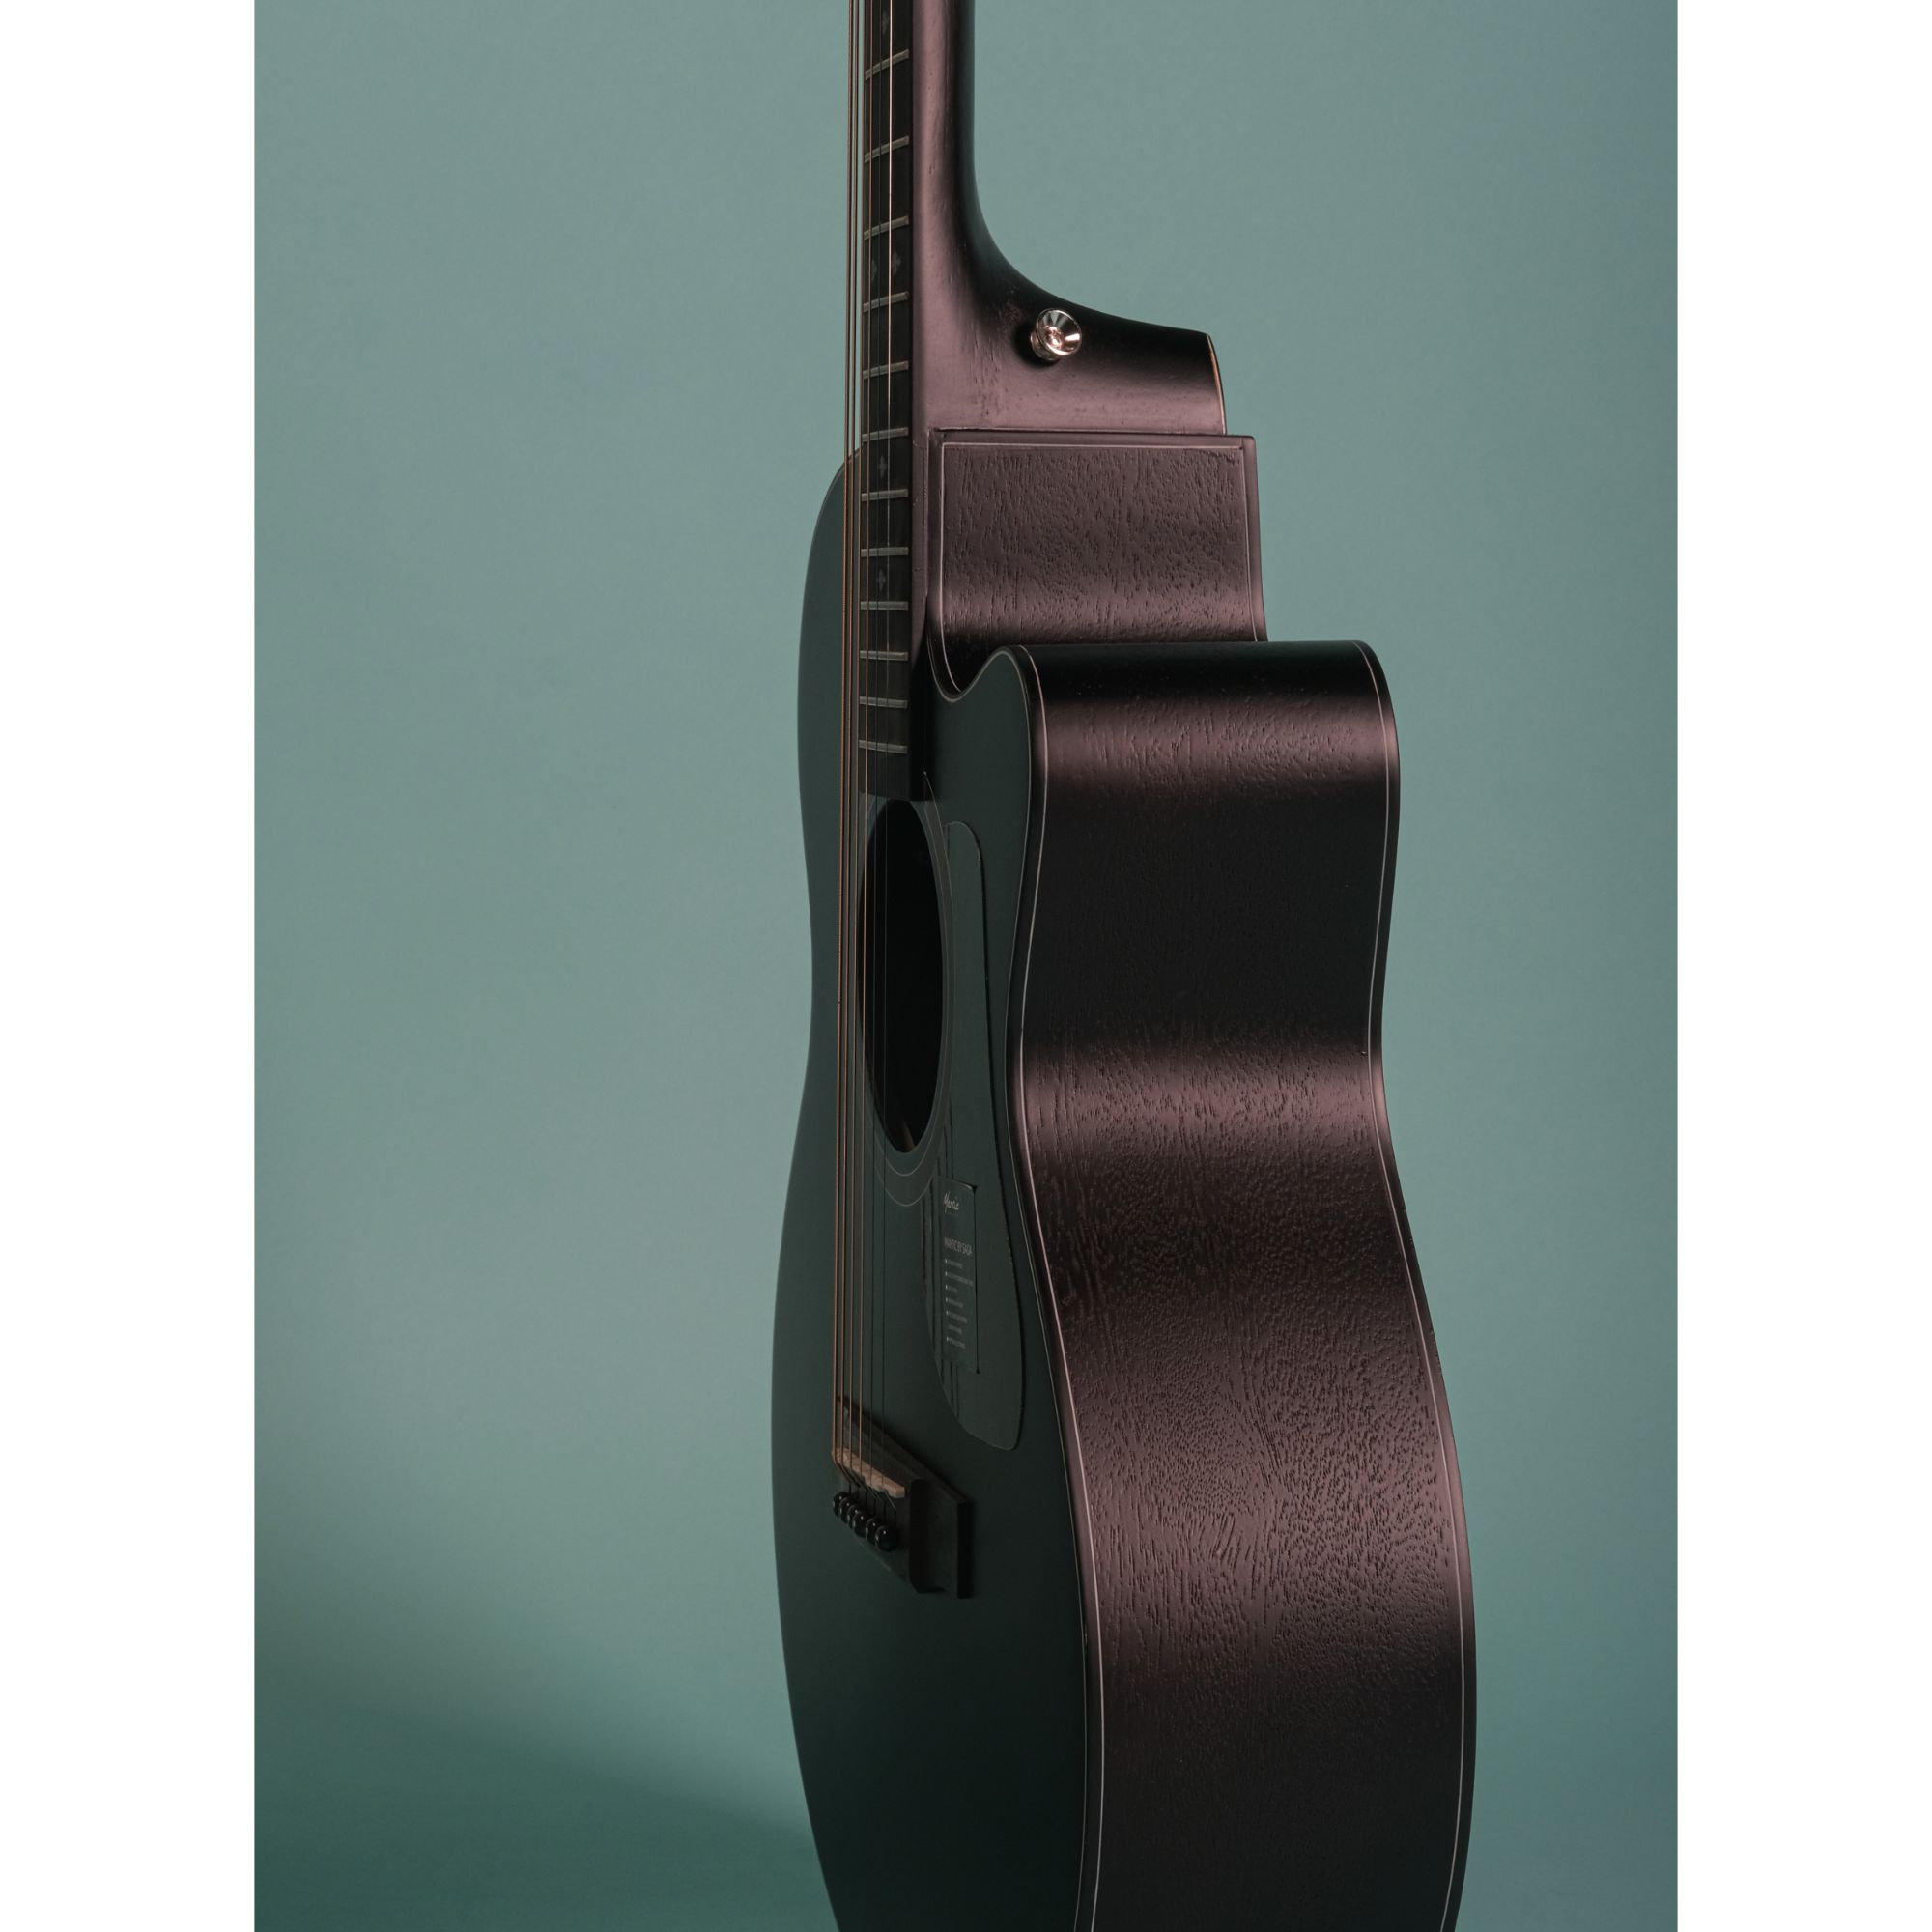 Mantic MG1CE Acoustic Guitar with Fishman Pickup - Black